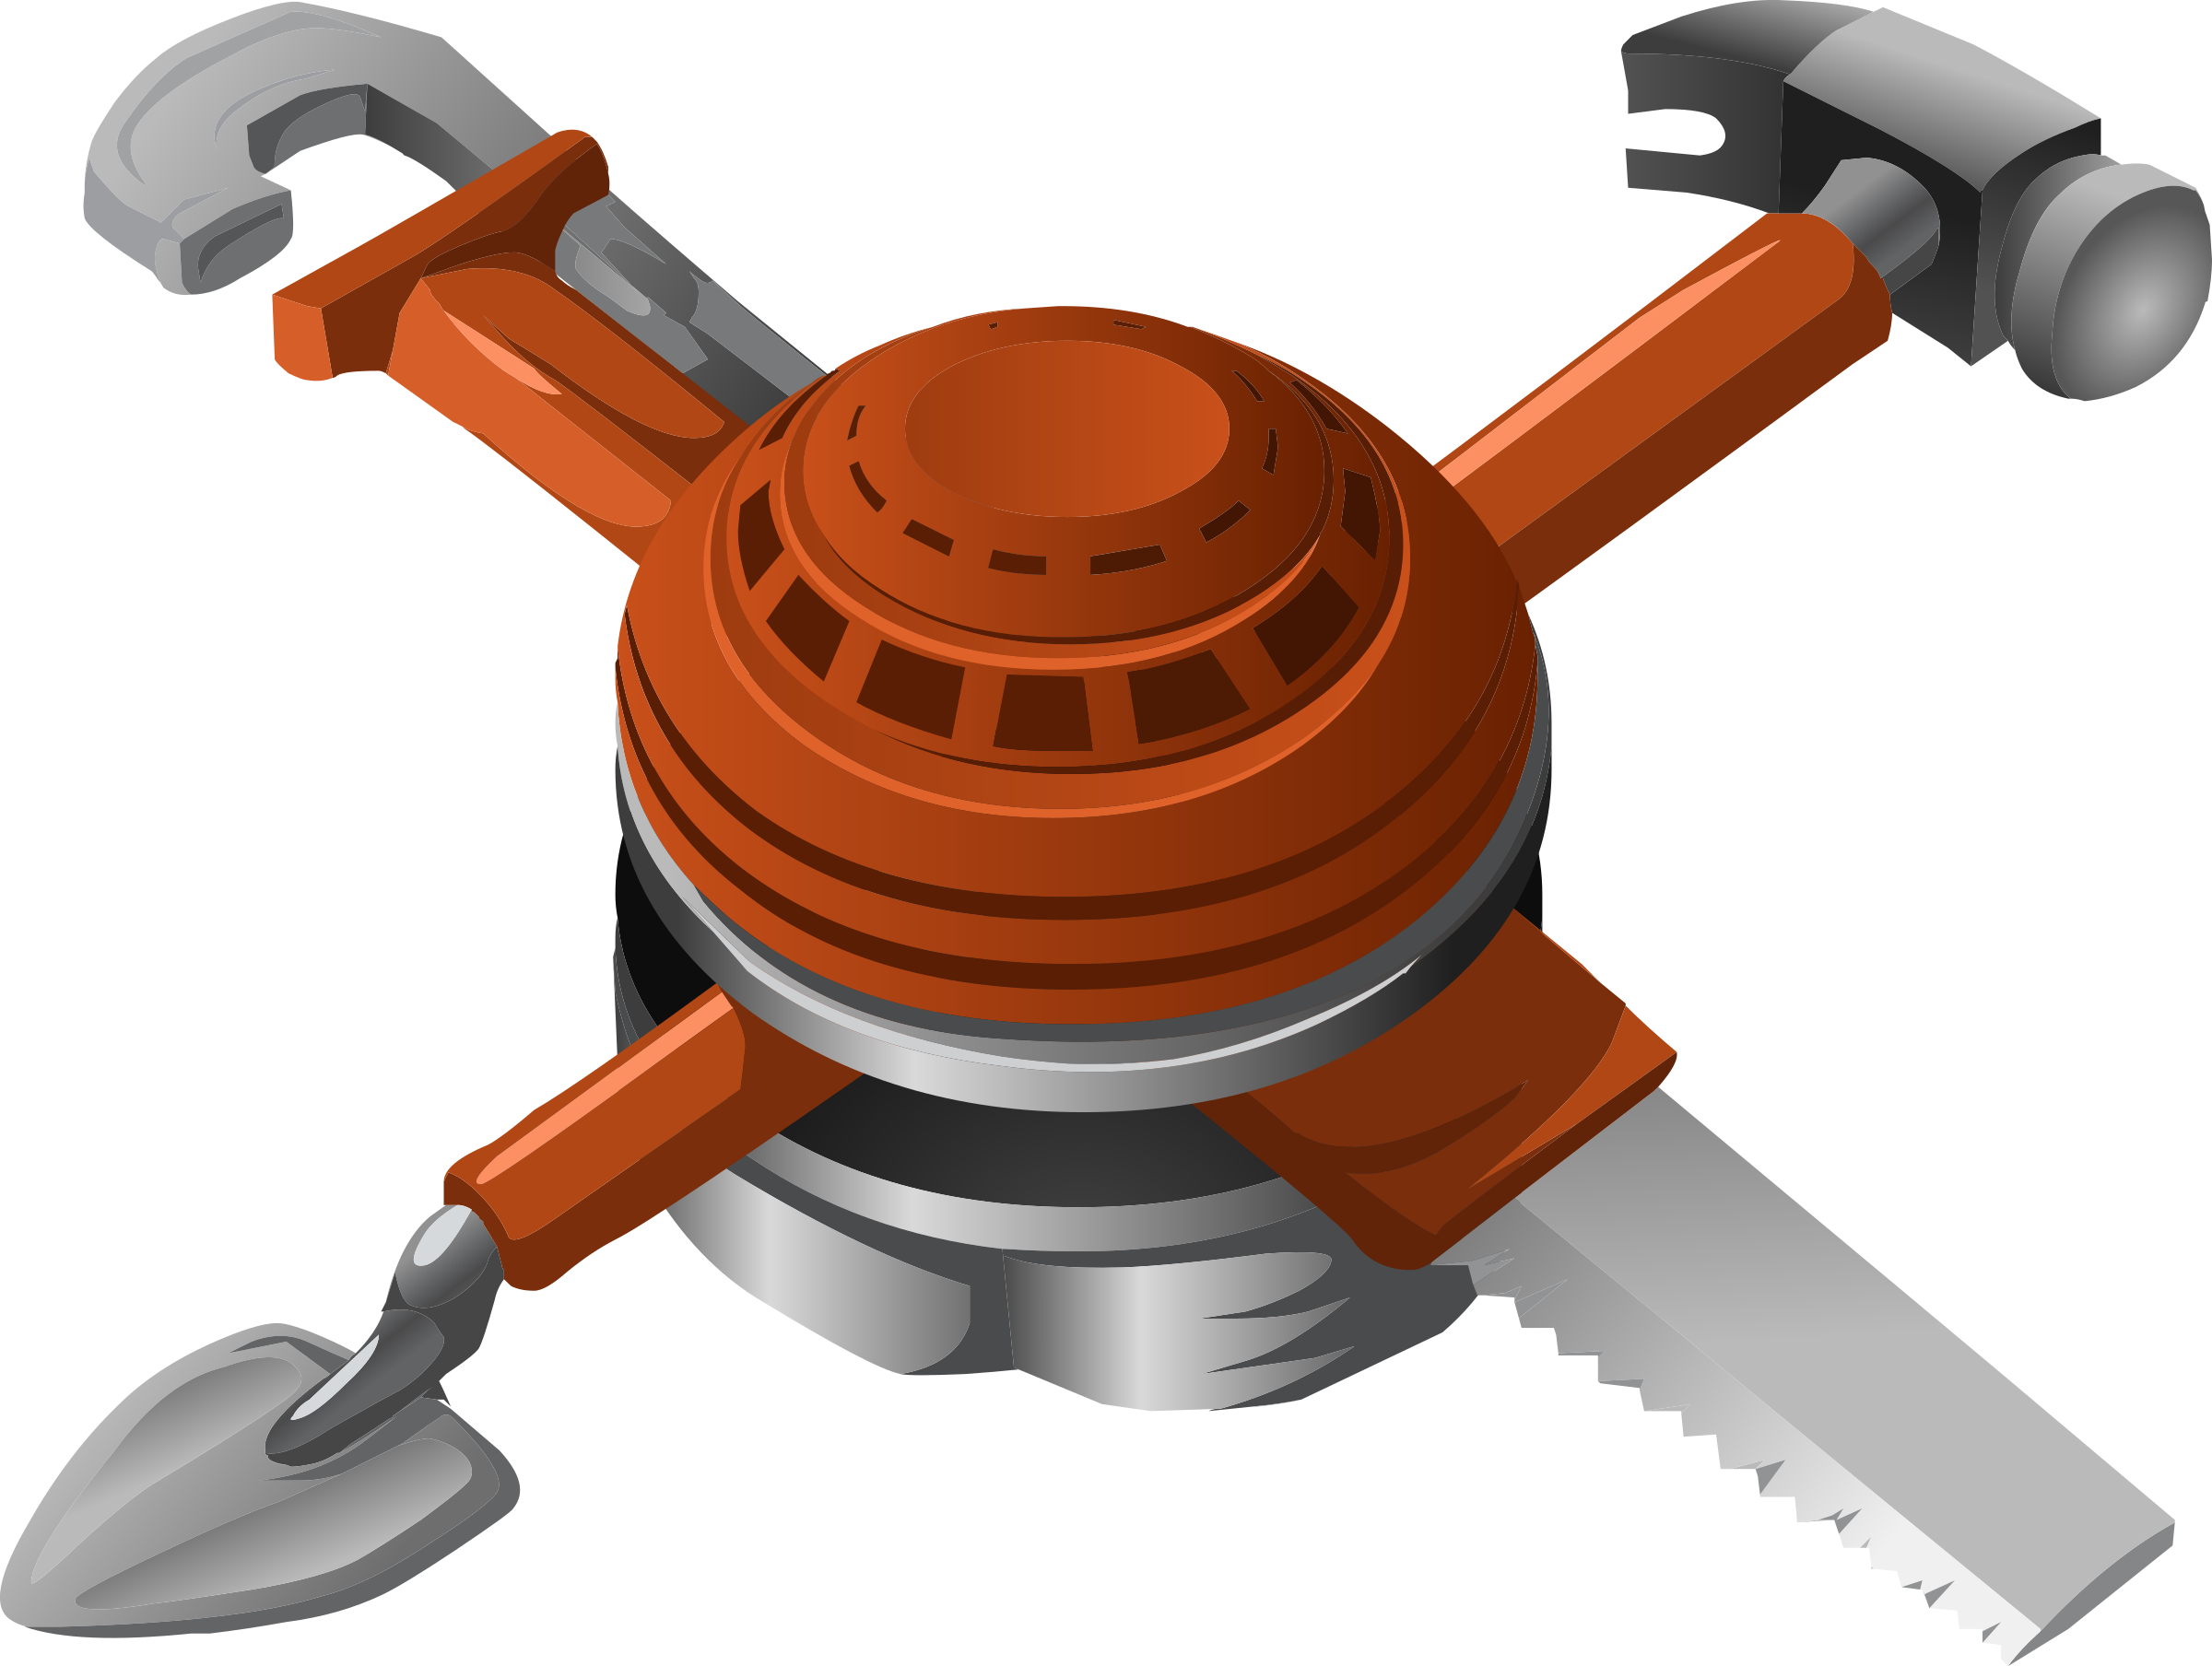 Tools construction icons png. Clipart hammer design technology tool